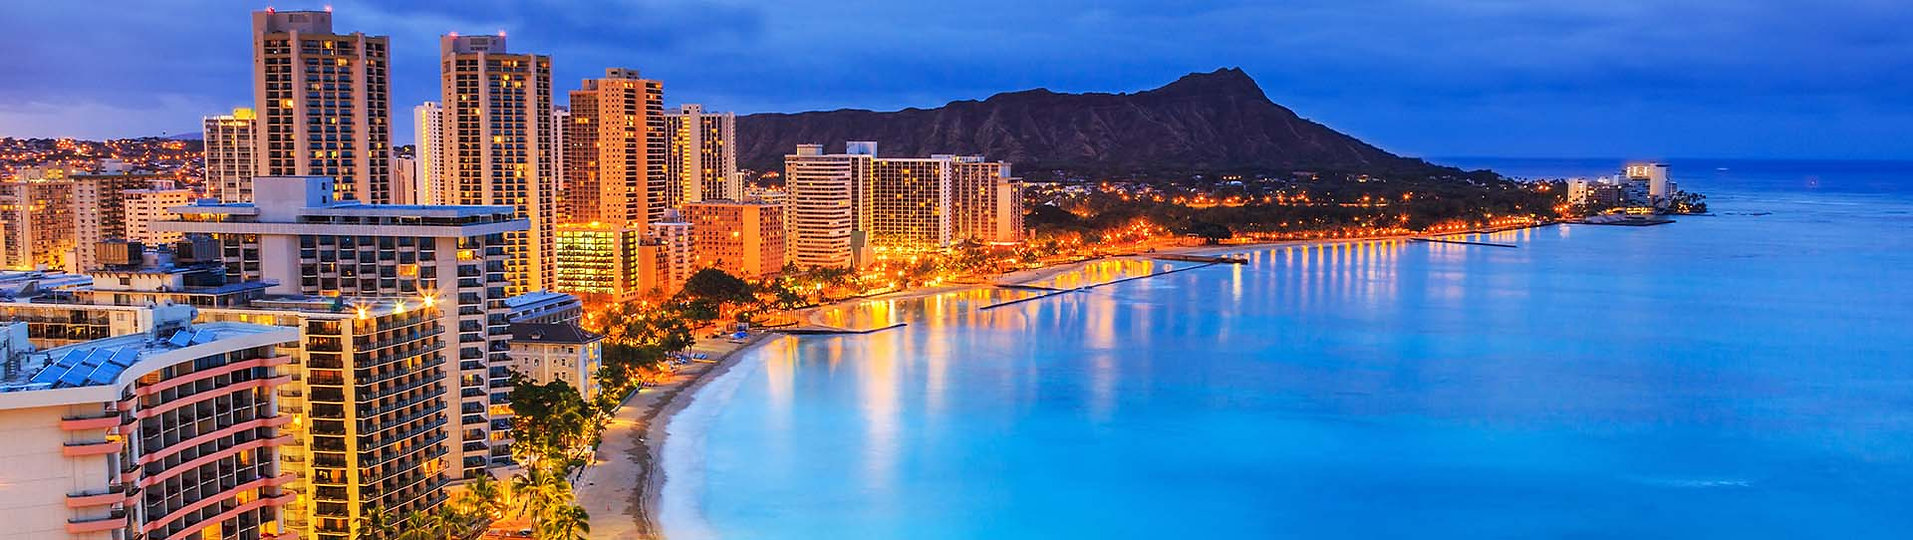 waikiki-beach-night.jpg